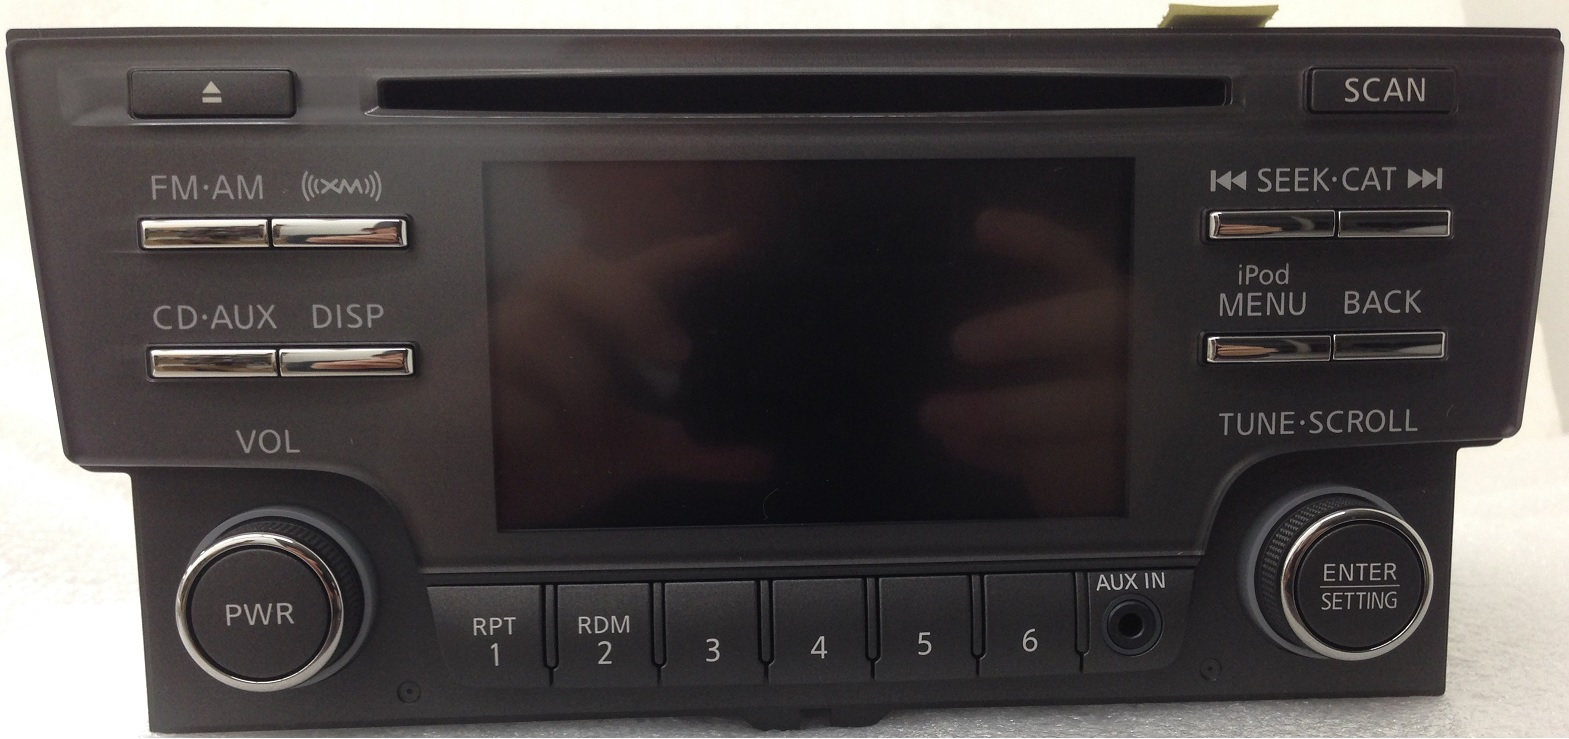 Nissan Sentra Ra D Cd Sat Radio on 200 Dodge Intrepid